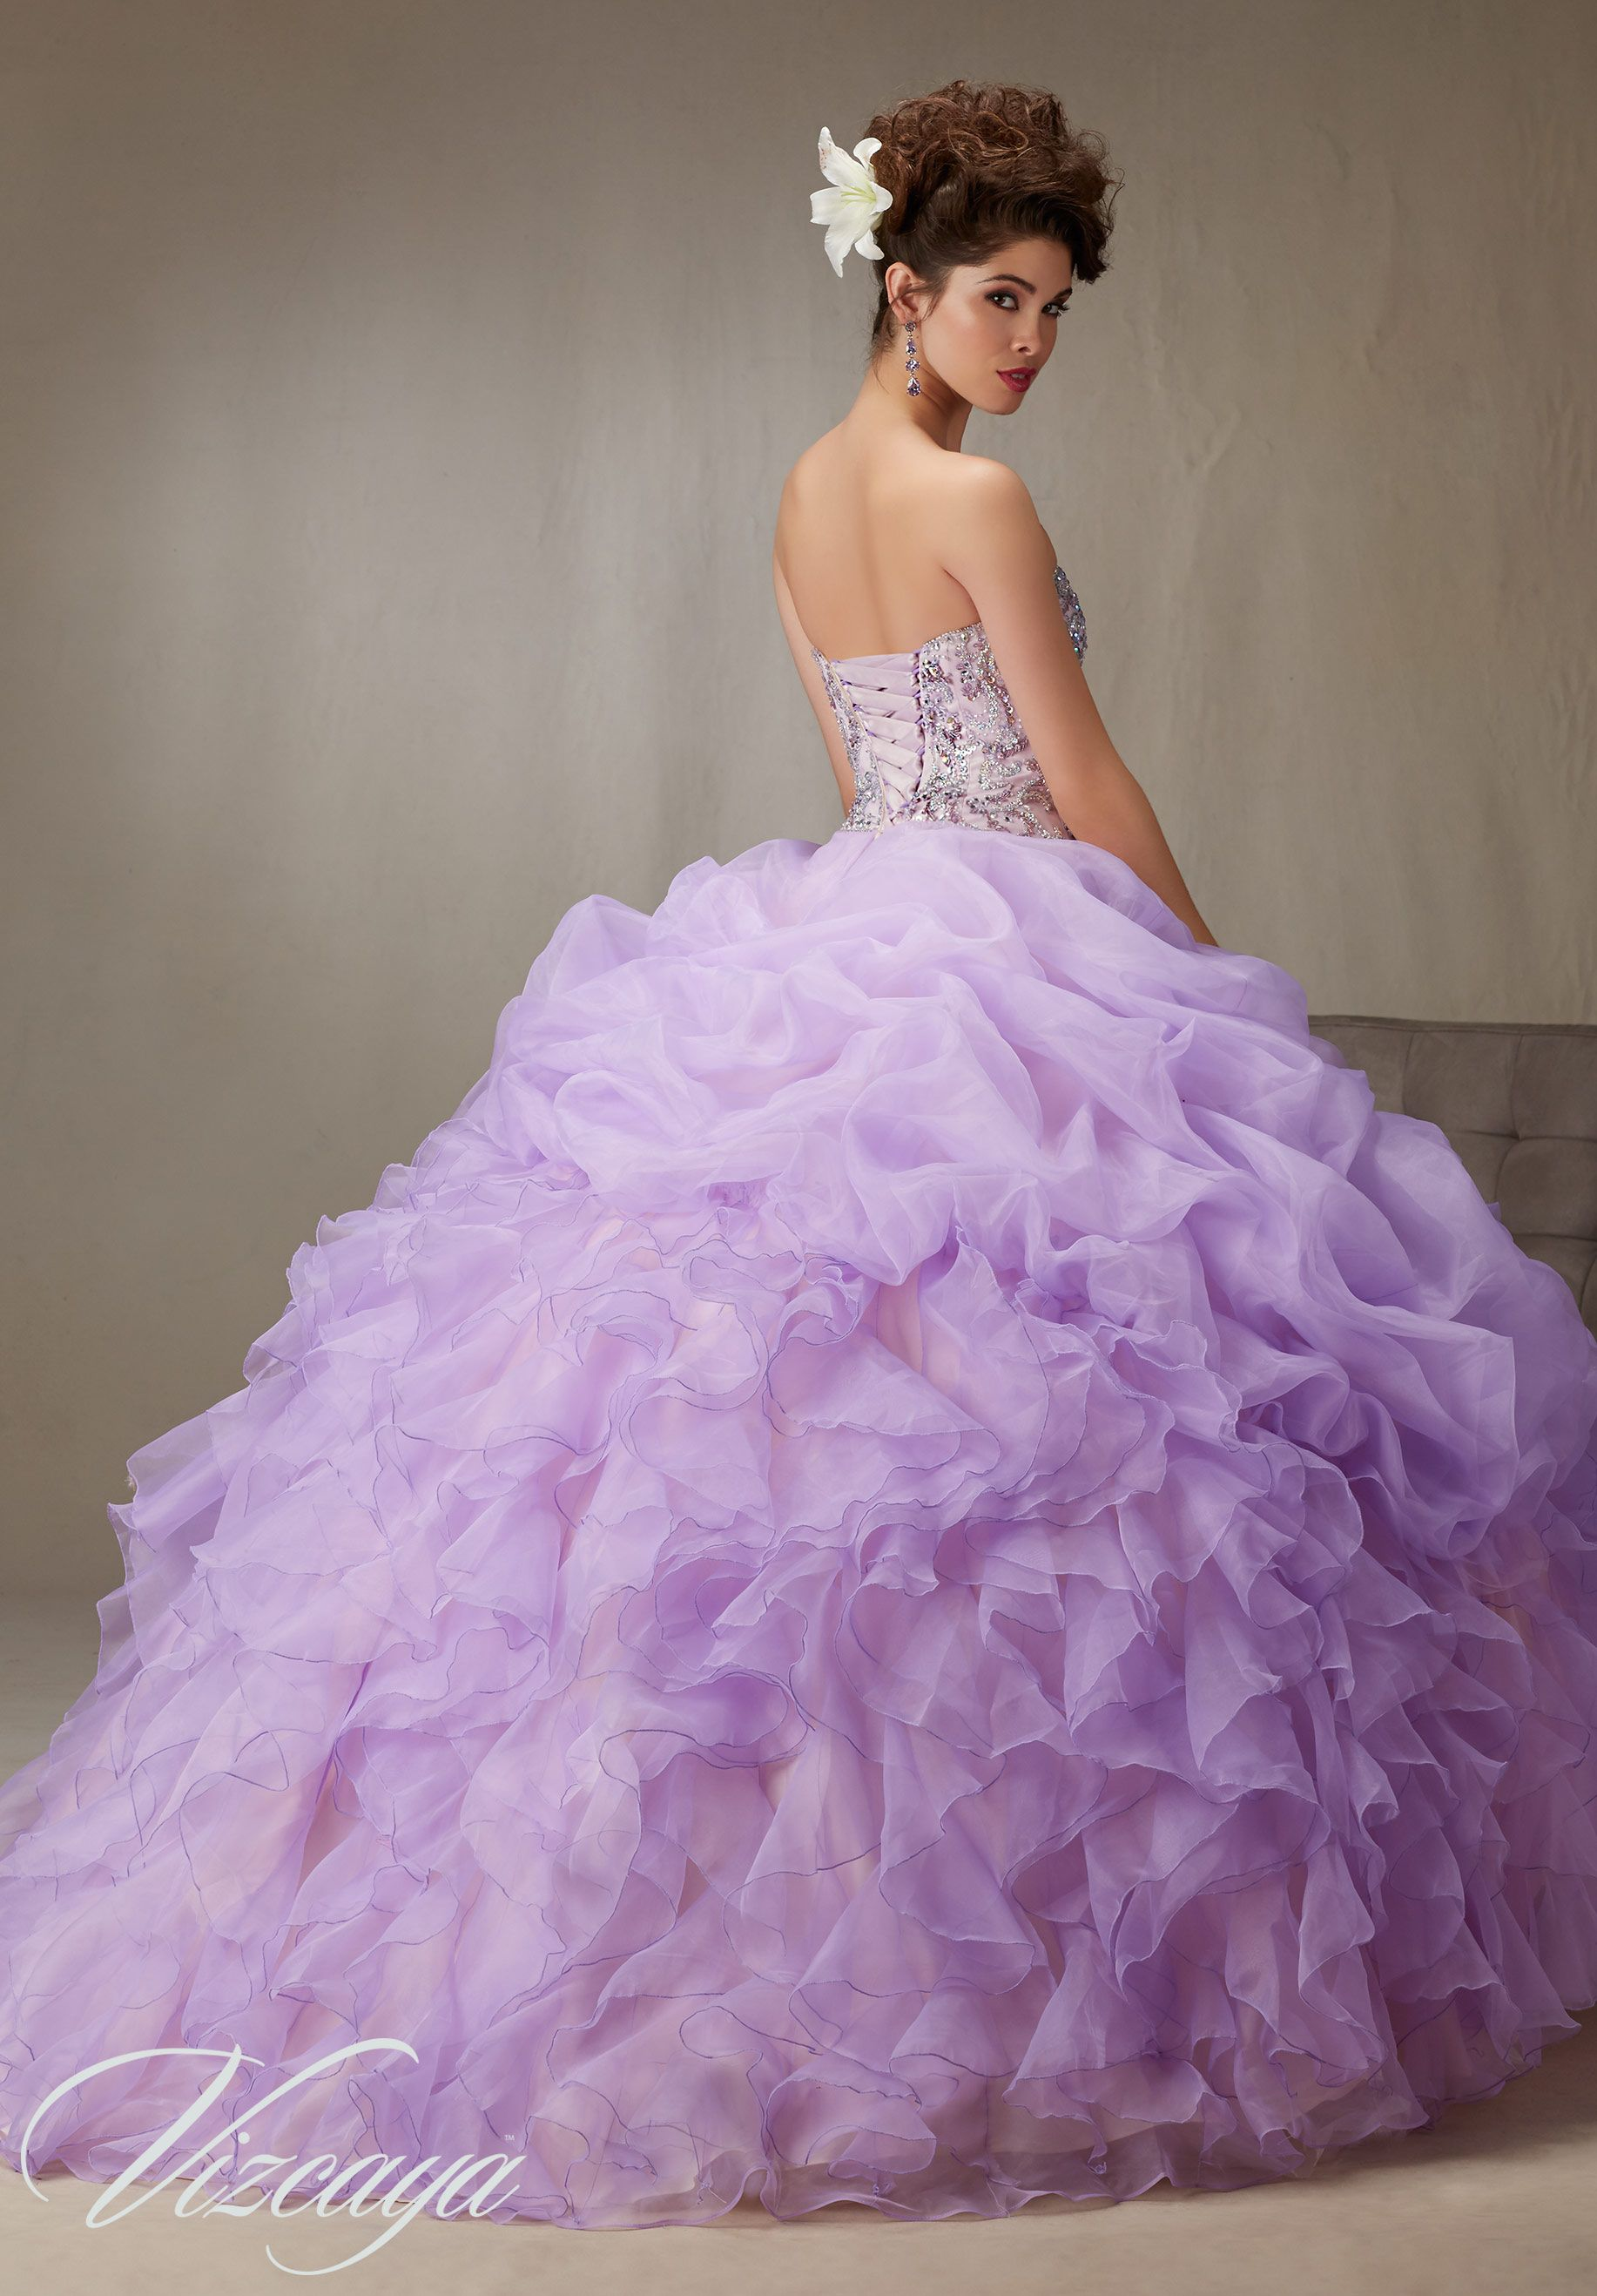 Purple Quinceanera Dress By Vizcaya Morilee Designed By Madeline Gardner Billowy Ruffled Organza Quinceanera Dresses Purple Quinceanera Dresses Quince Dresses [ 2636 x 1834 Pixel ]